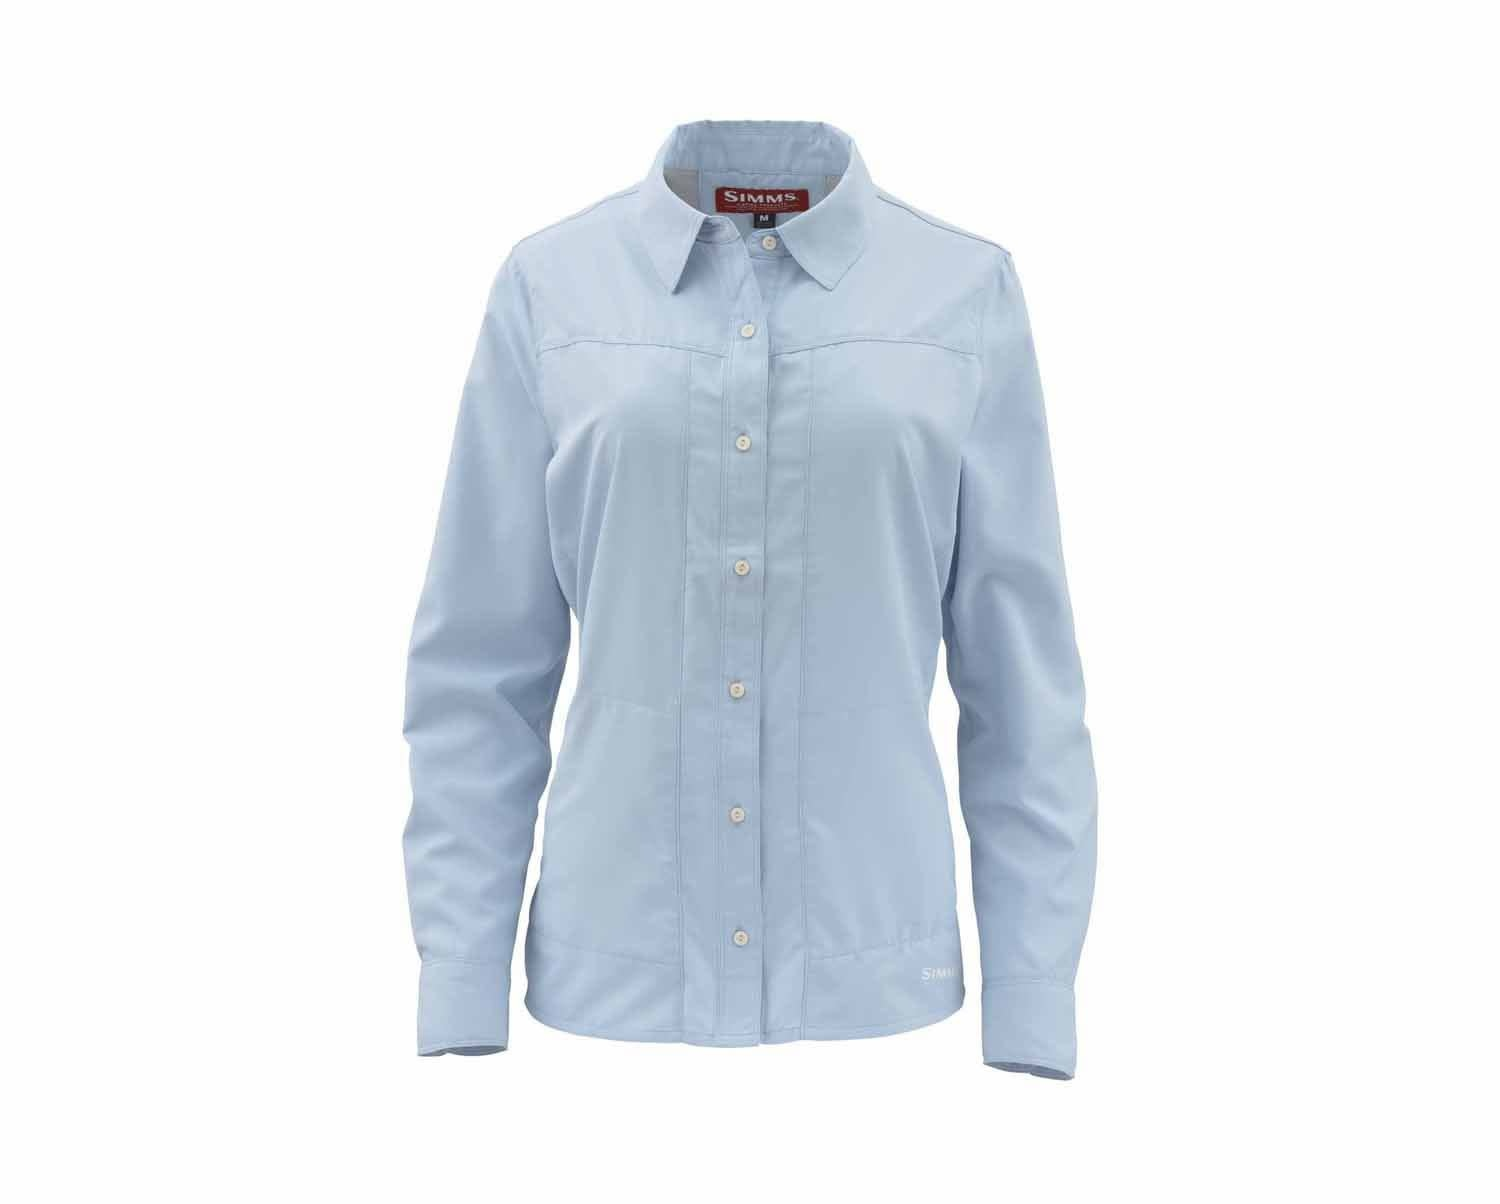 Simms Women's Isle LS Shirt 50% Off